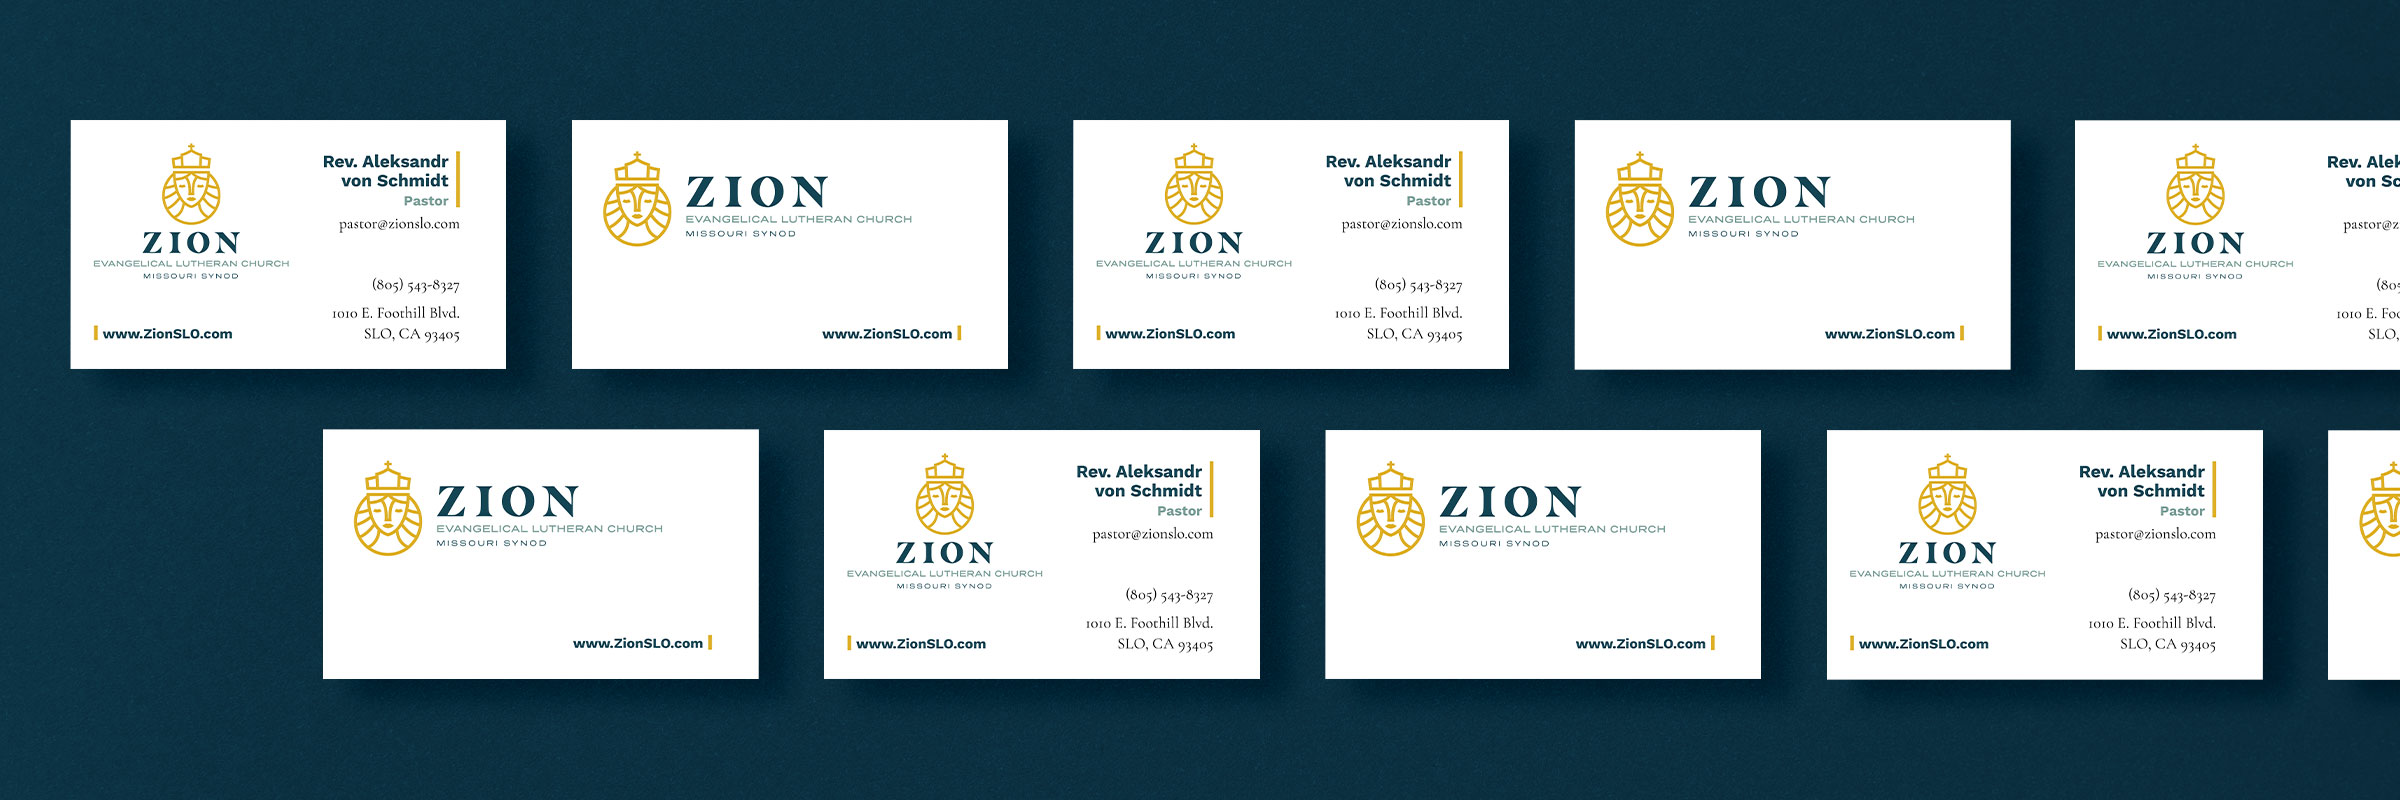 Zion-Church-SLO-Branding-06-business-cards